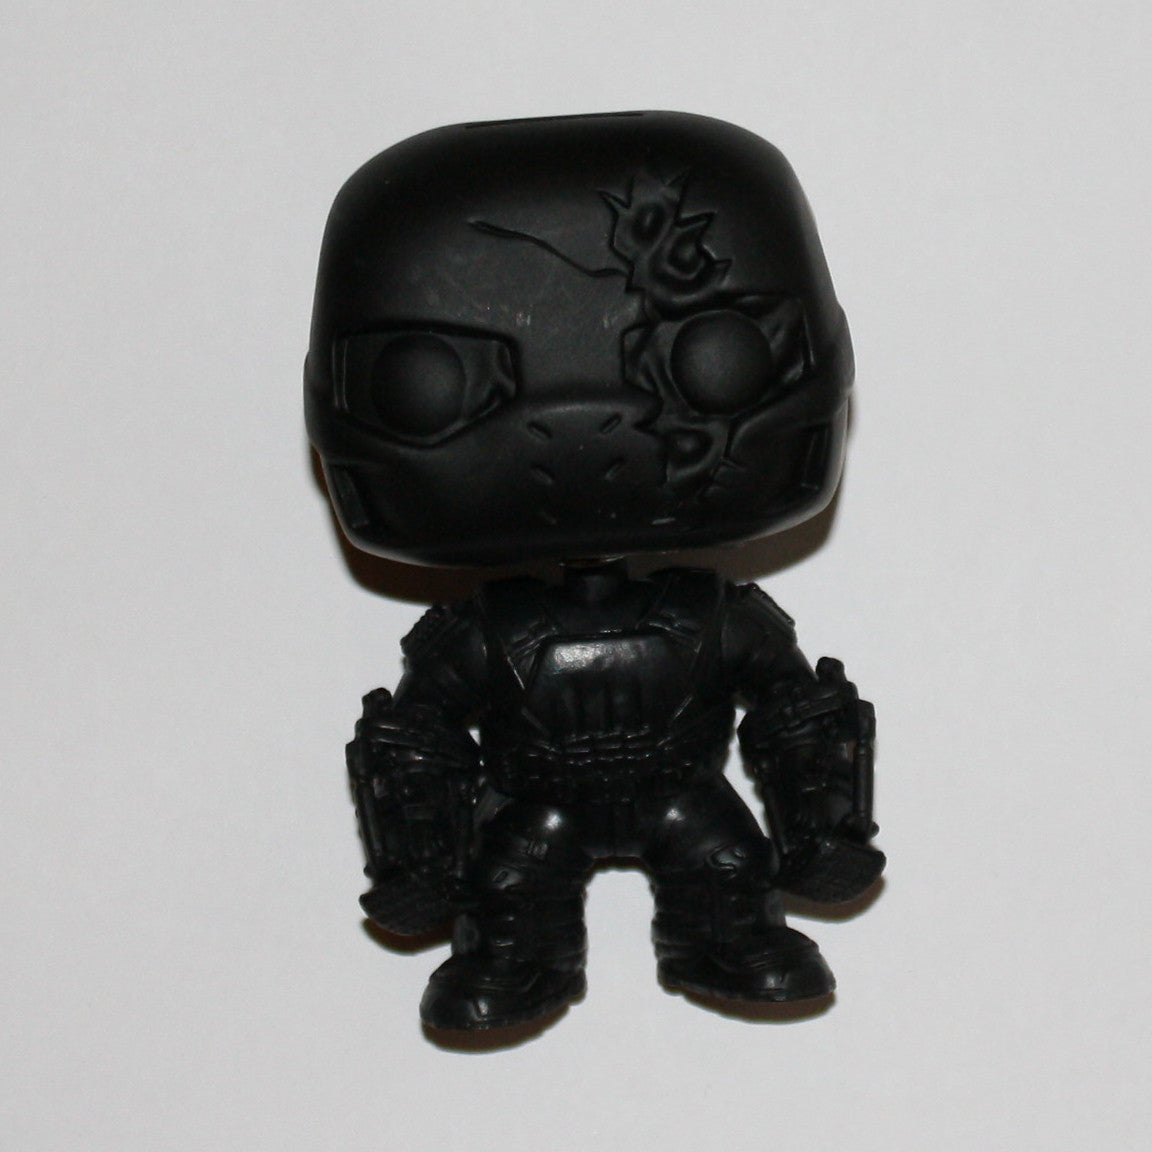 Crossbones [Captain America: Civil War] Proto